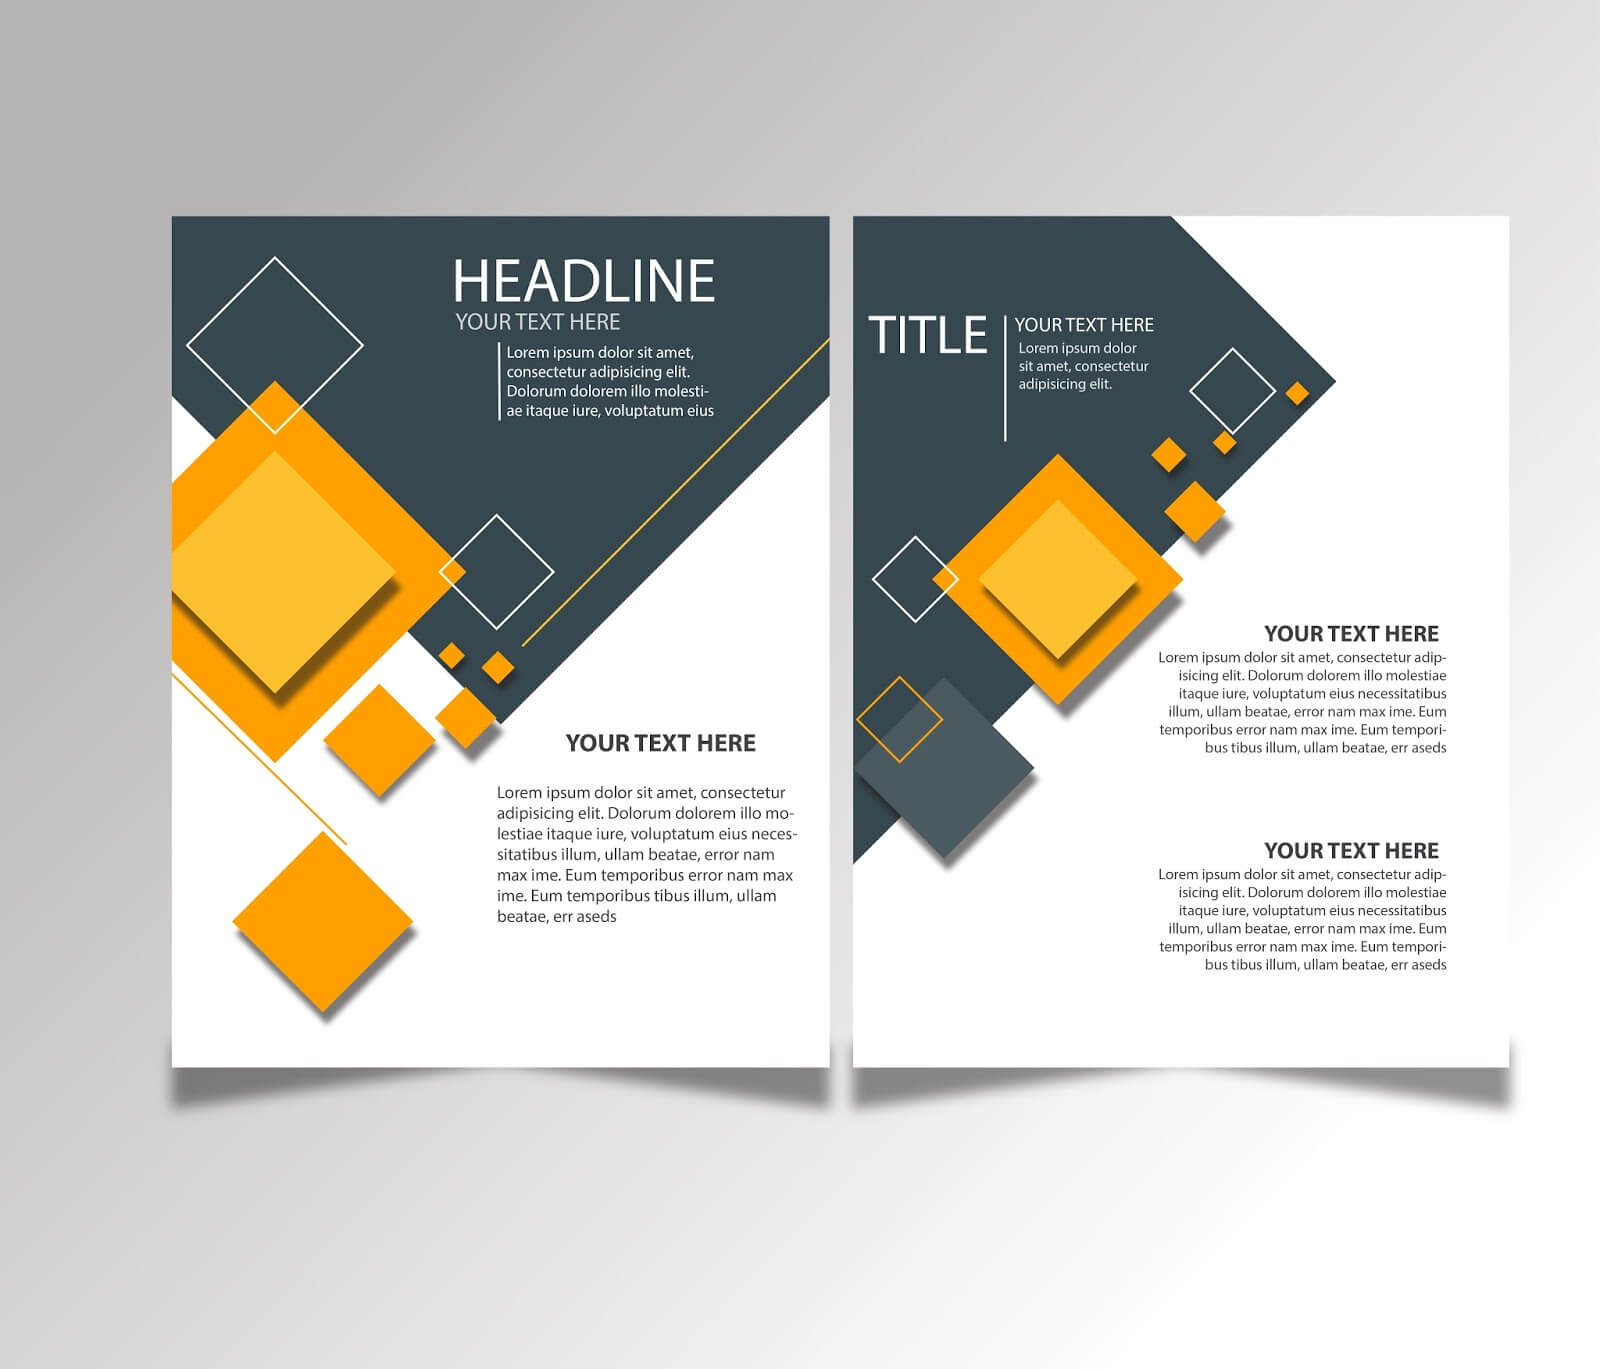 026 Hotel Brochure Templates Free Download For Word Design With Regard To Creative Brochure Templates Free Download